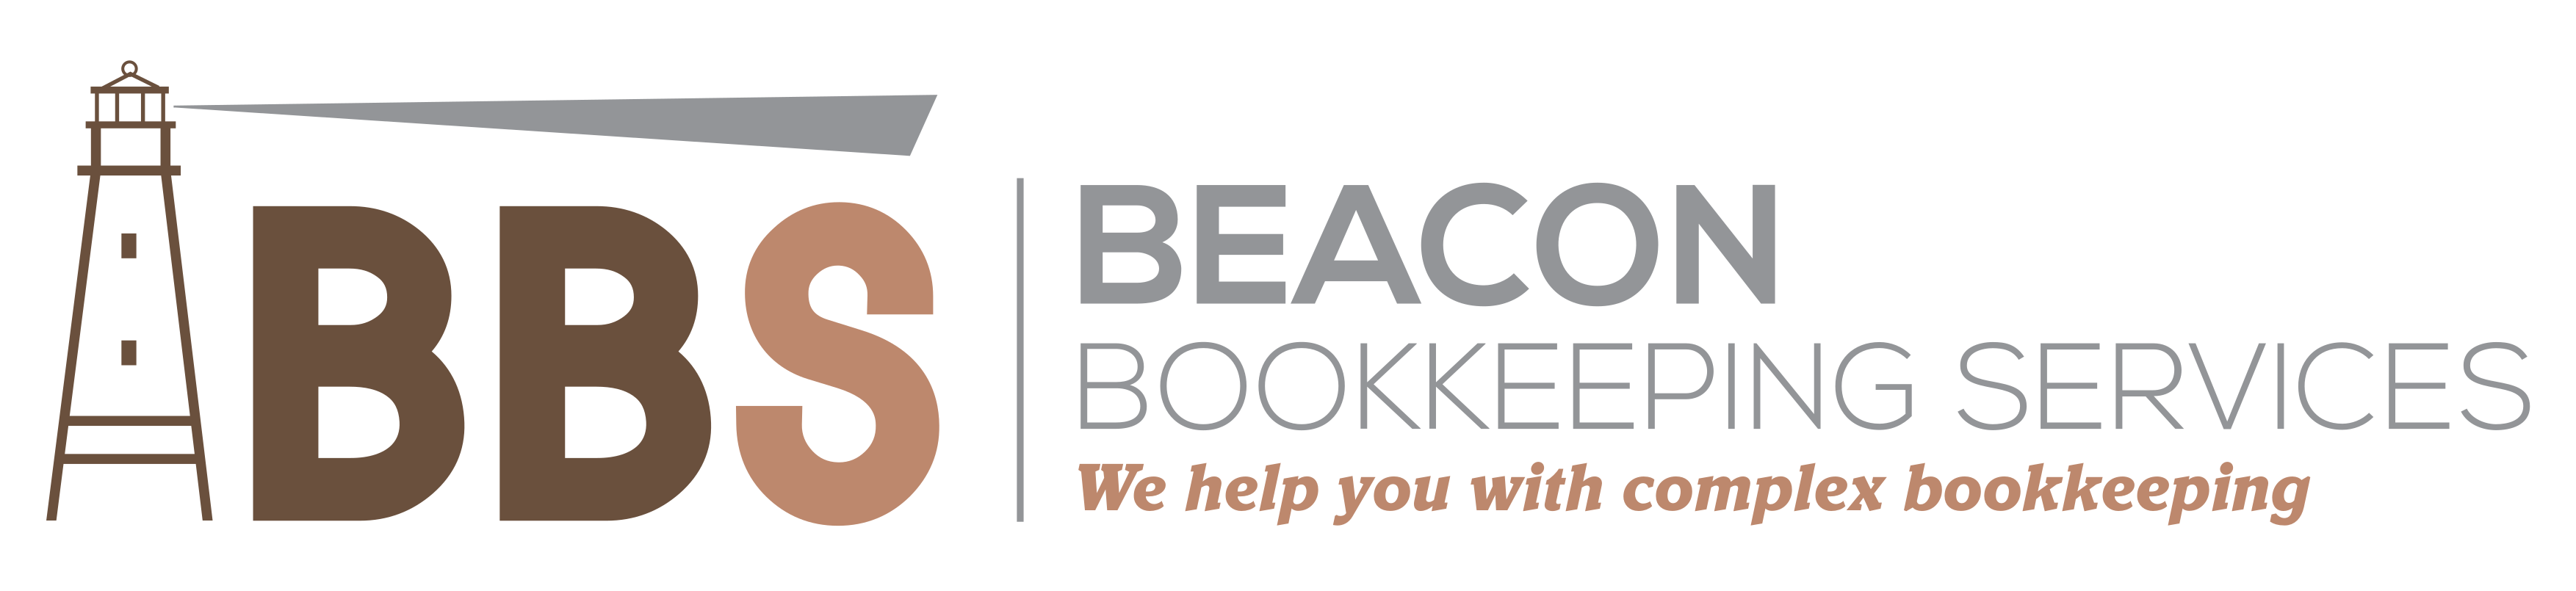 Beacon Bookkeeping Services